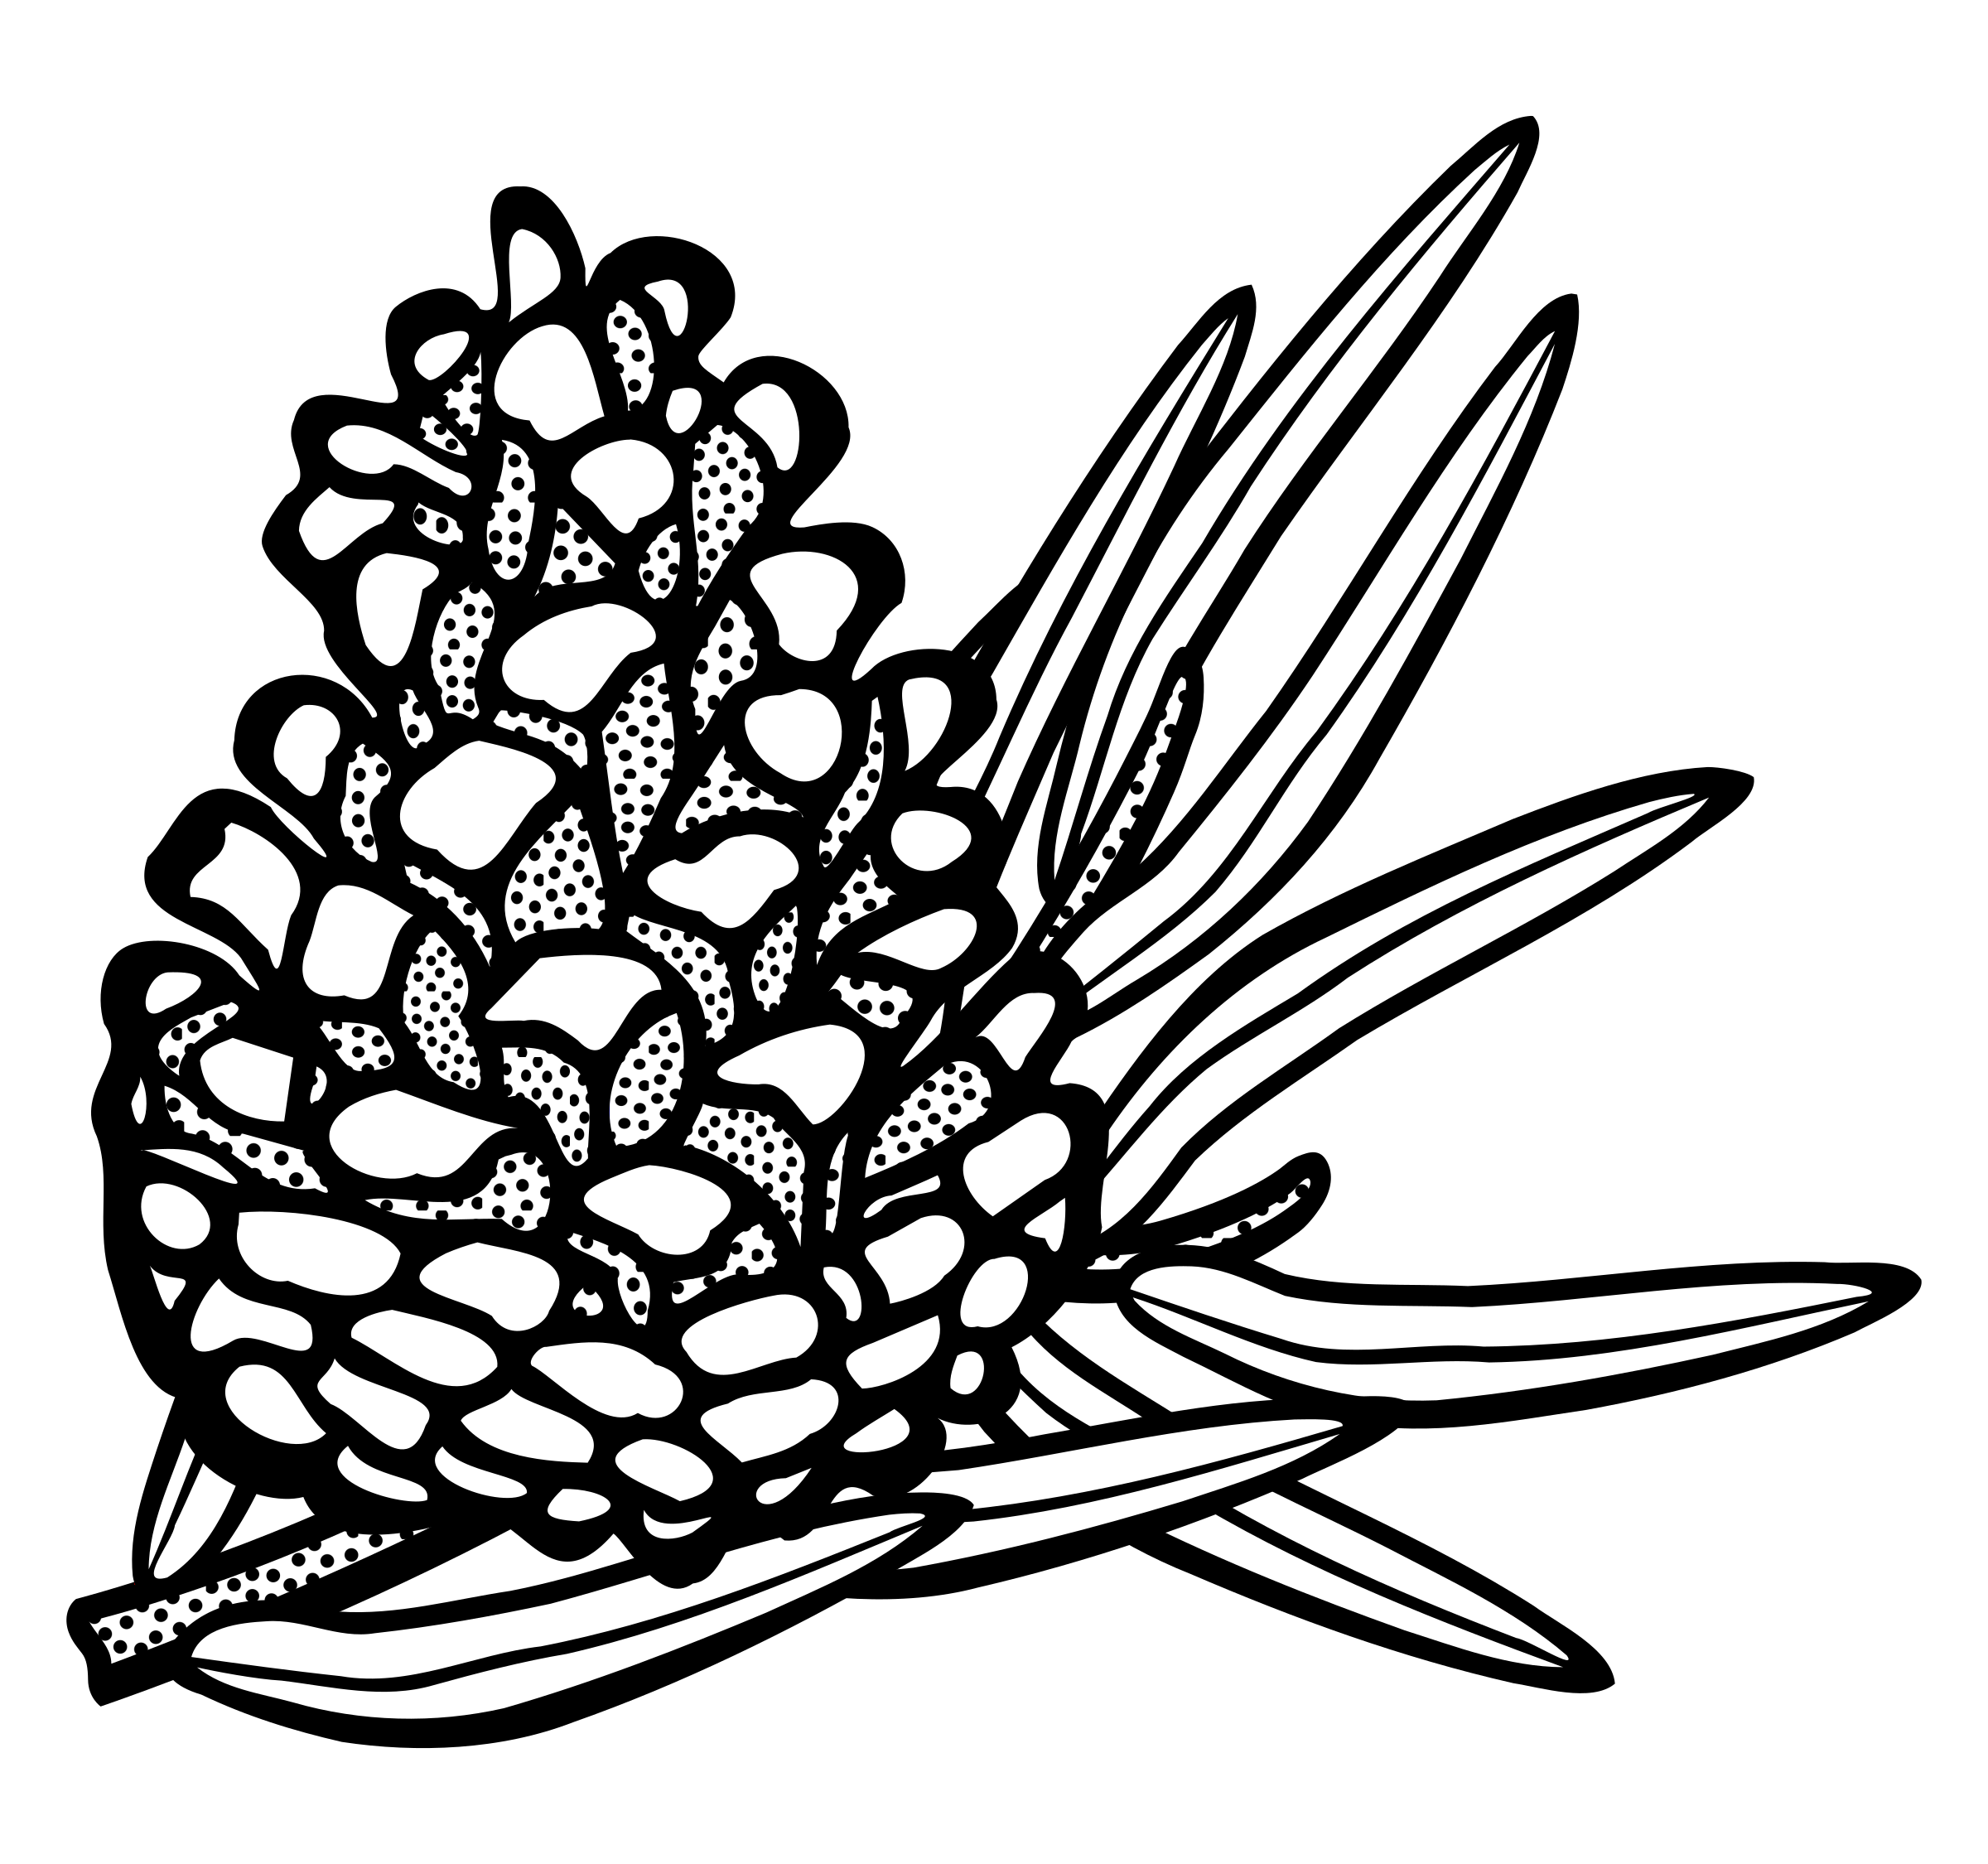 conifer cone - lineart by frankes